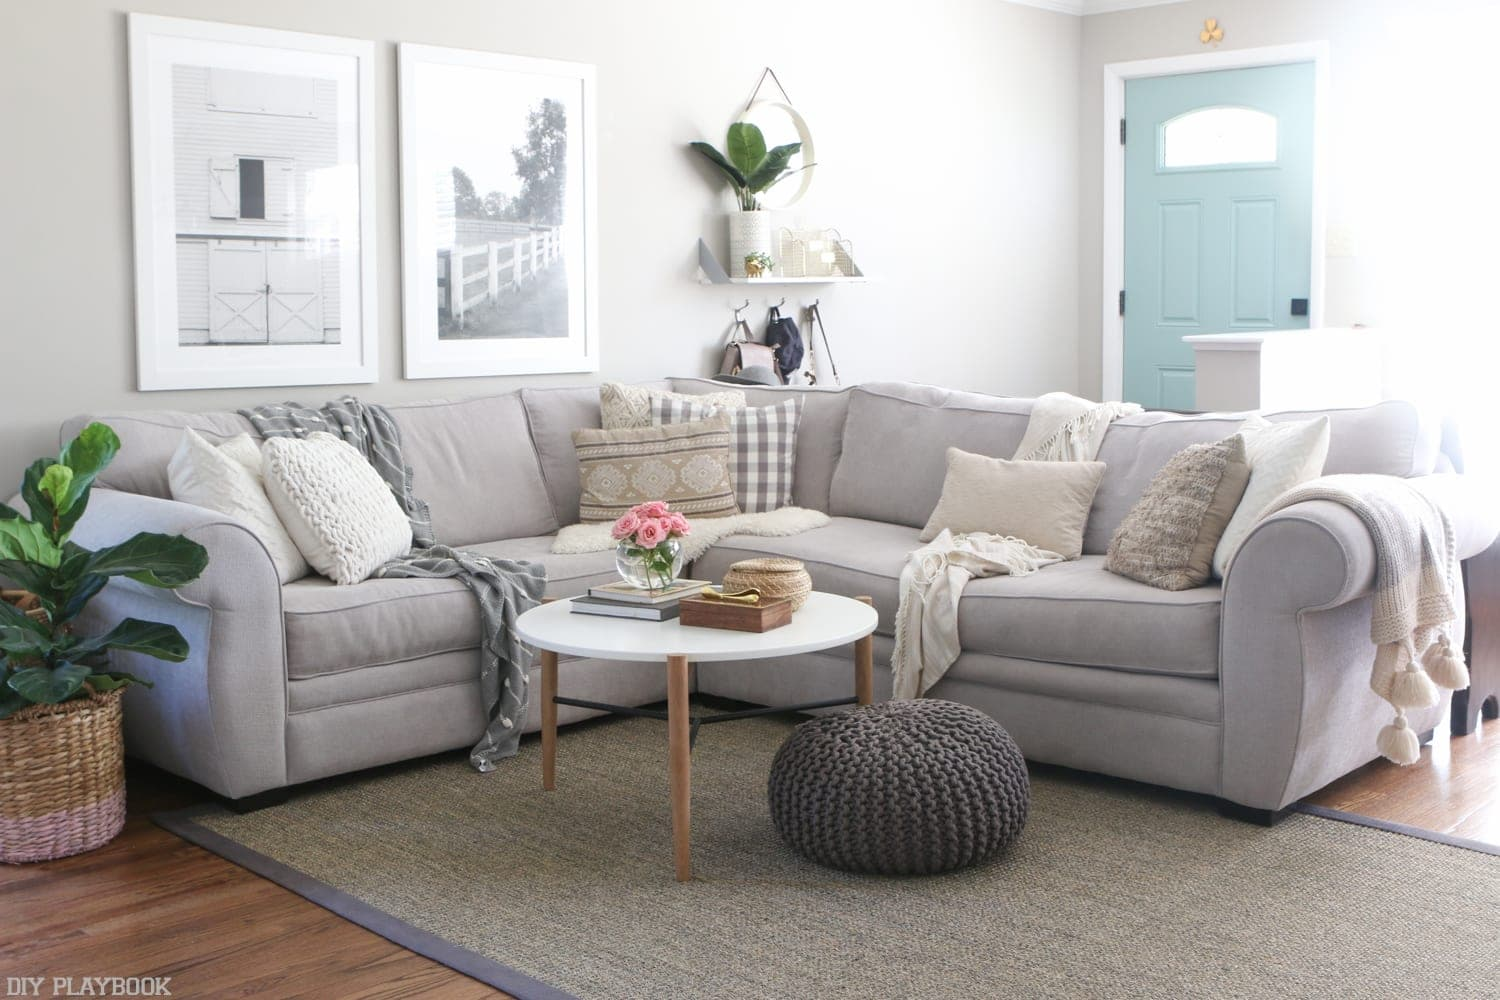 Add All Your Accent Pieces Back And The Couch Feel Brand New Again